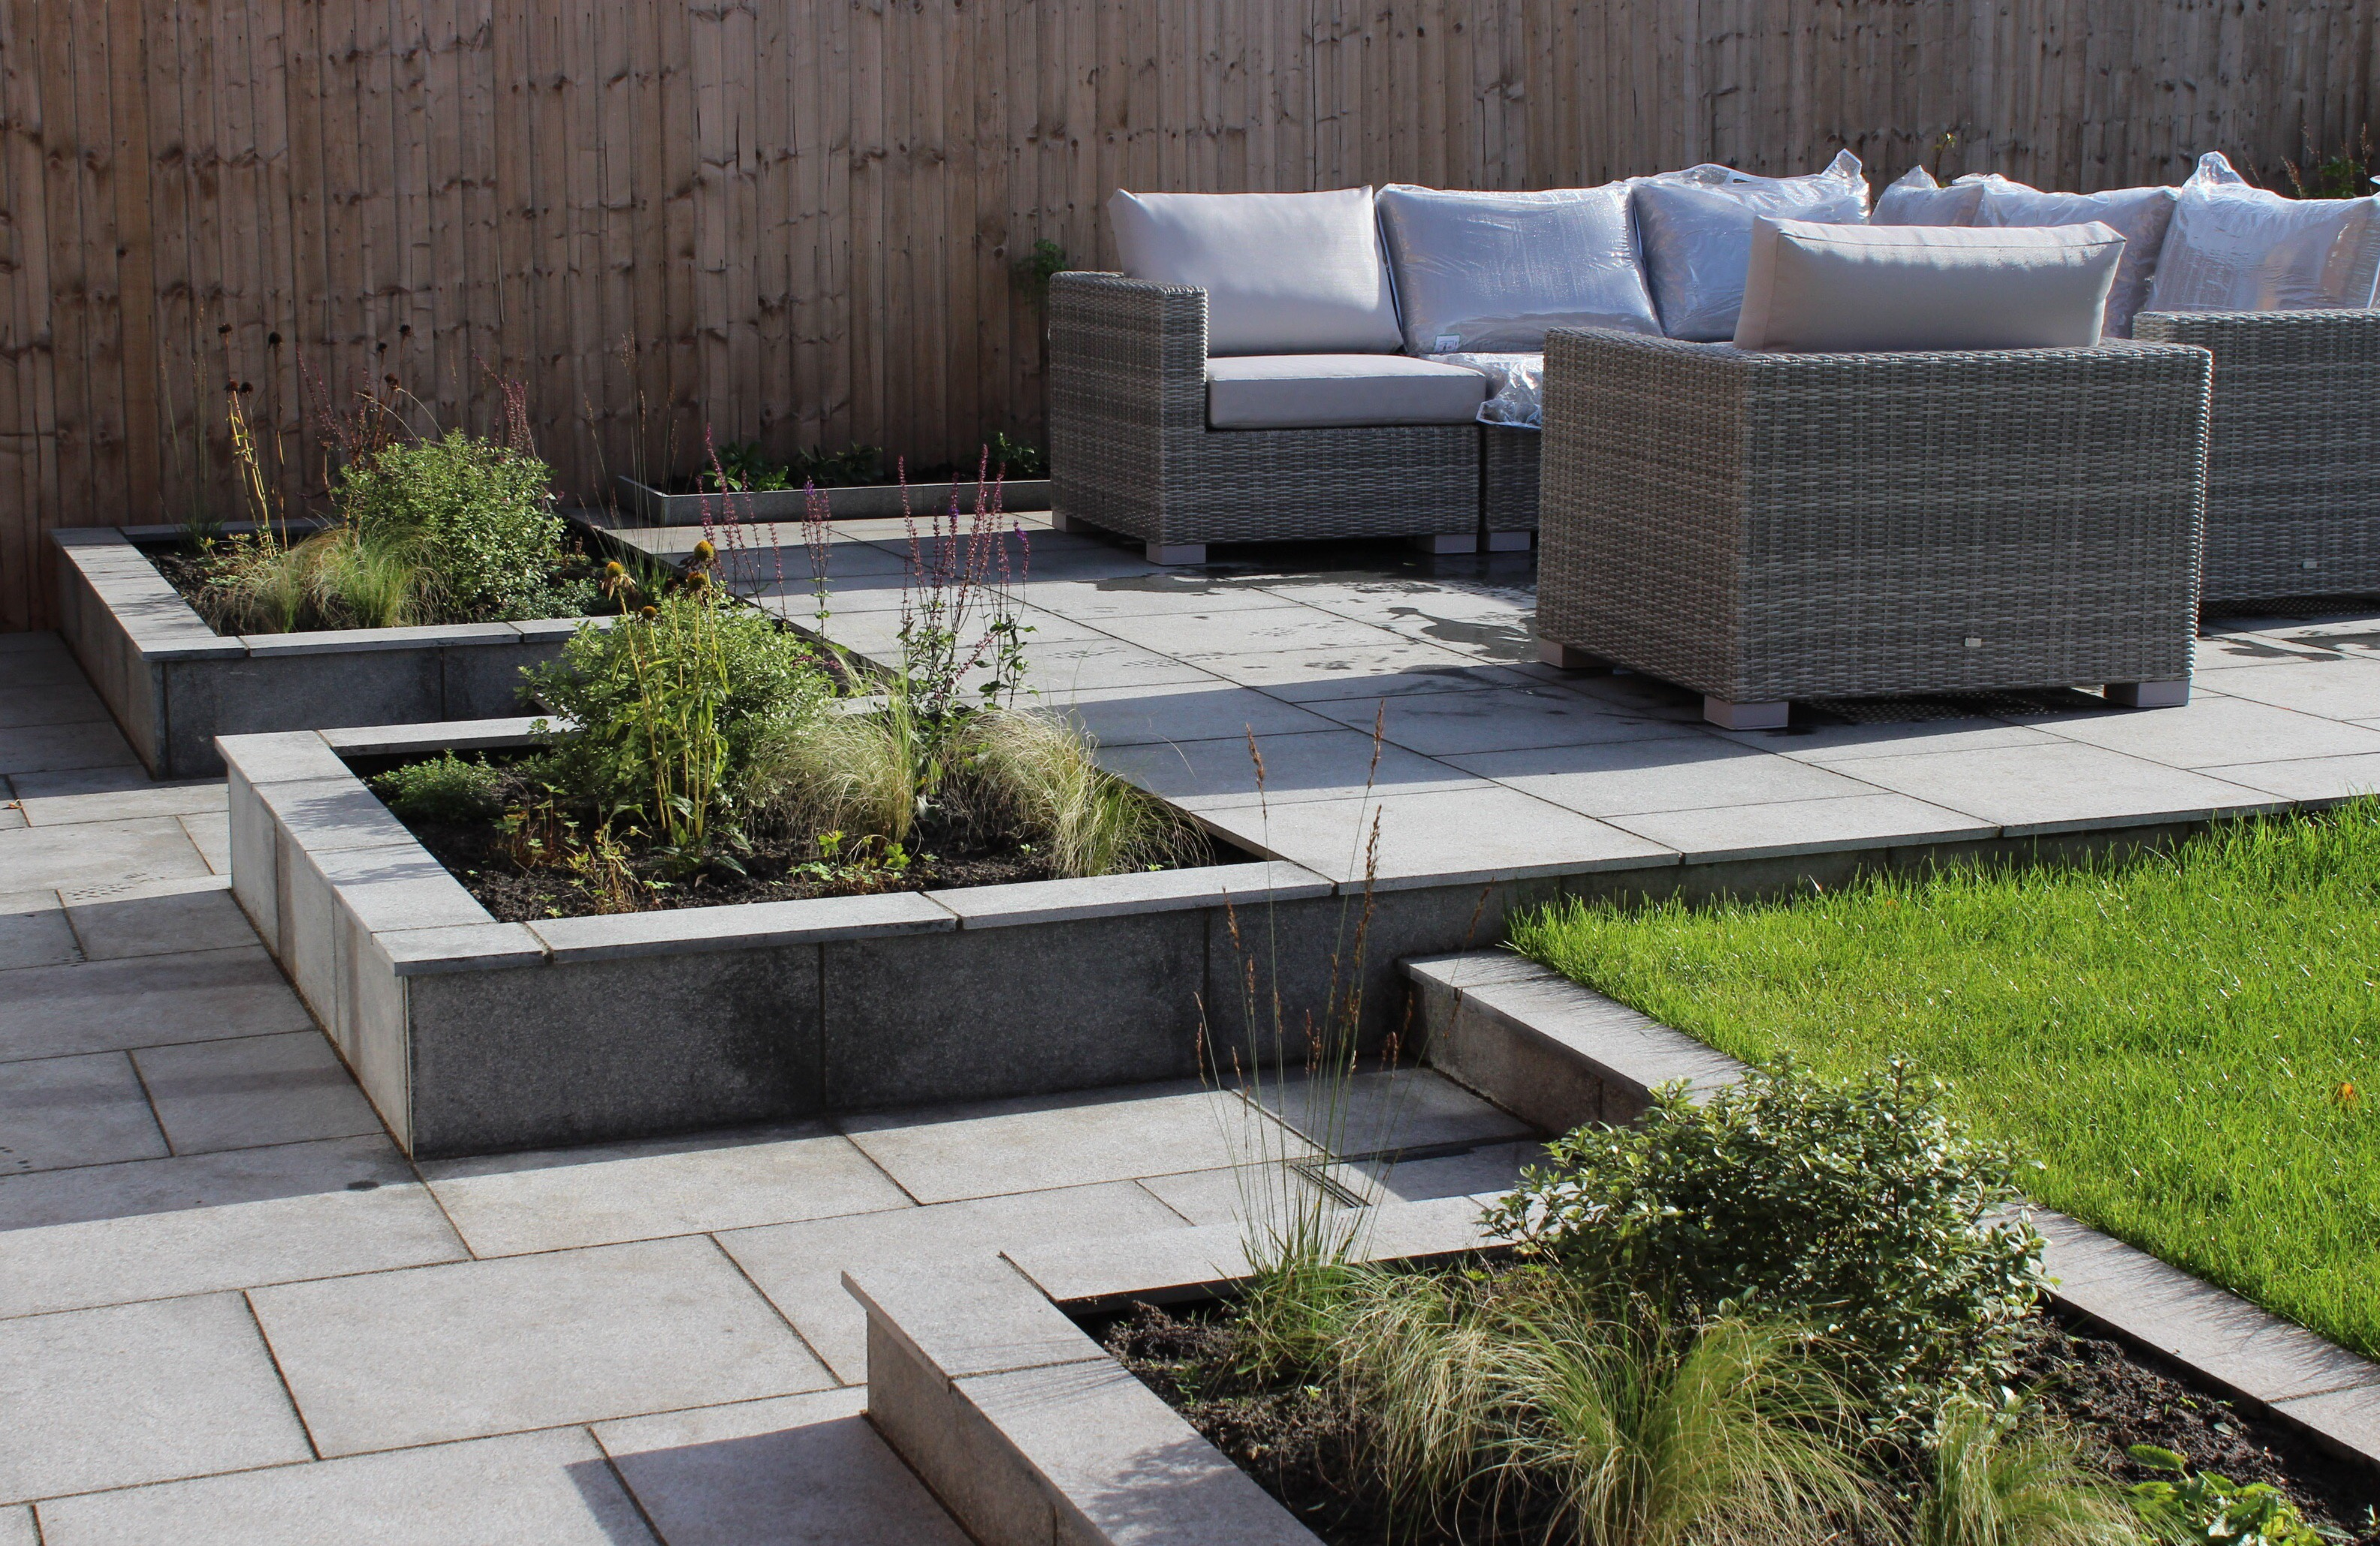 </p> <p>Find your ideal home design pro on designfor-me.com - get matched and see who's interested in your home project. Click image to see more inspiration from our design pros</p> <p>Design by Lindsay, garden designer from West Lancashire, North West</p> <p> #gardendesign #gardeninspiration #gardenlove #gardenideas #gardens </p> <p>